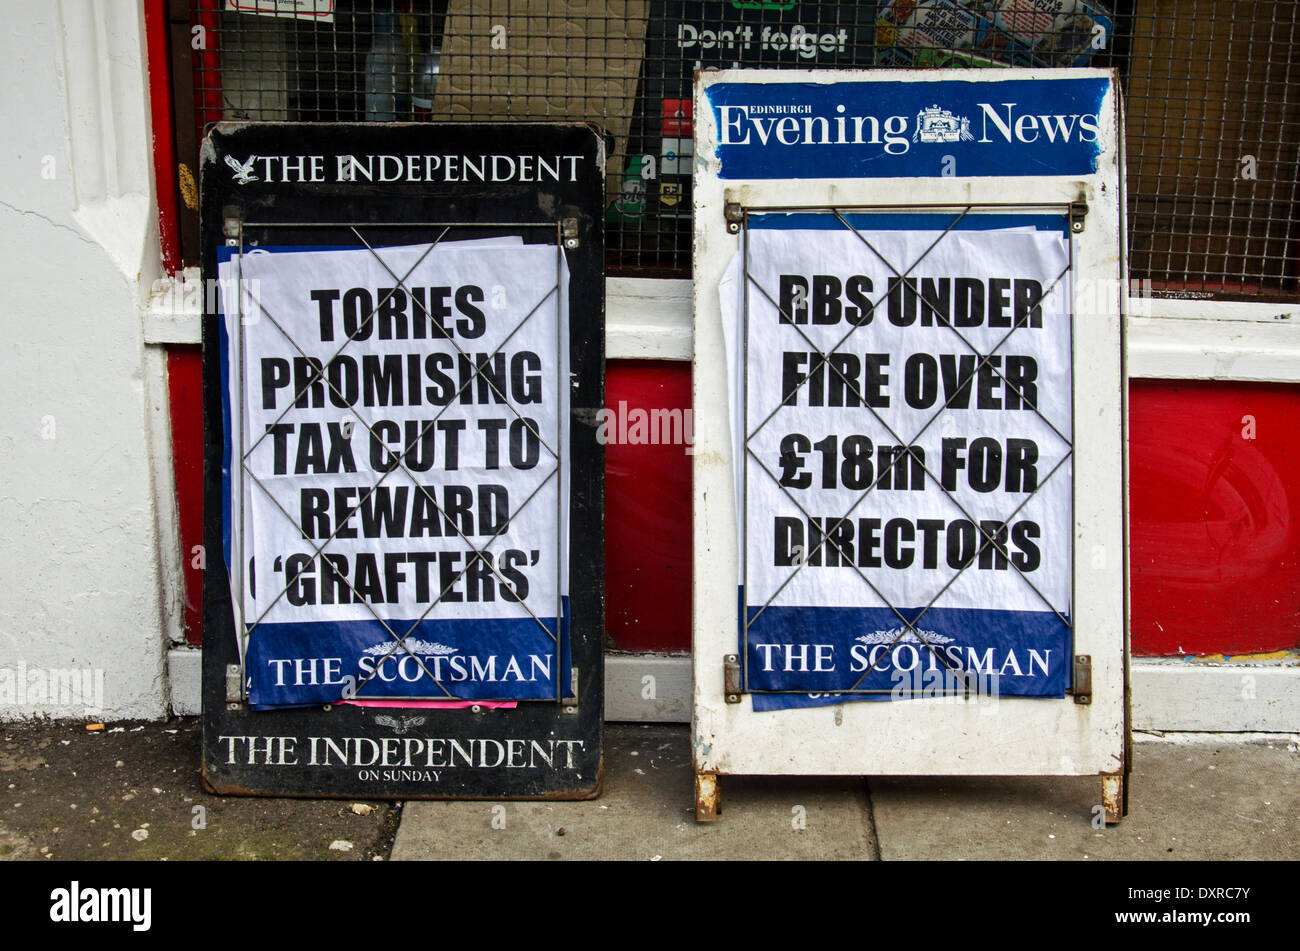 Newspaper A boards outside a newsagent in the centre of Edinburgh with news of tax cuts and RBS Directors. - Stock Image